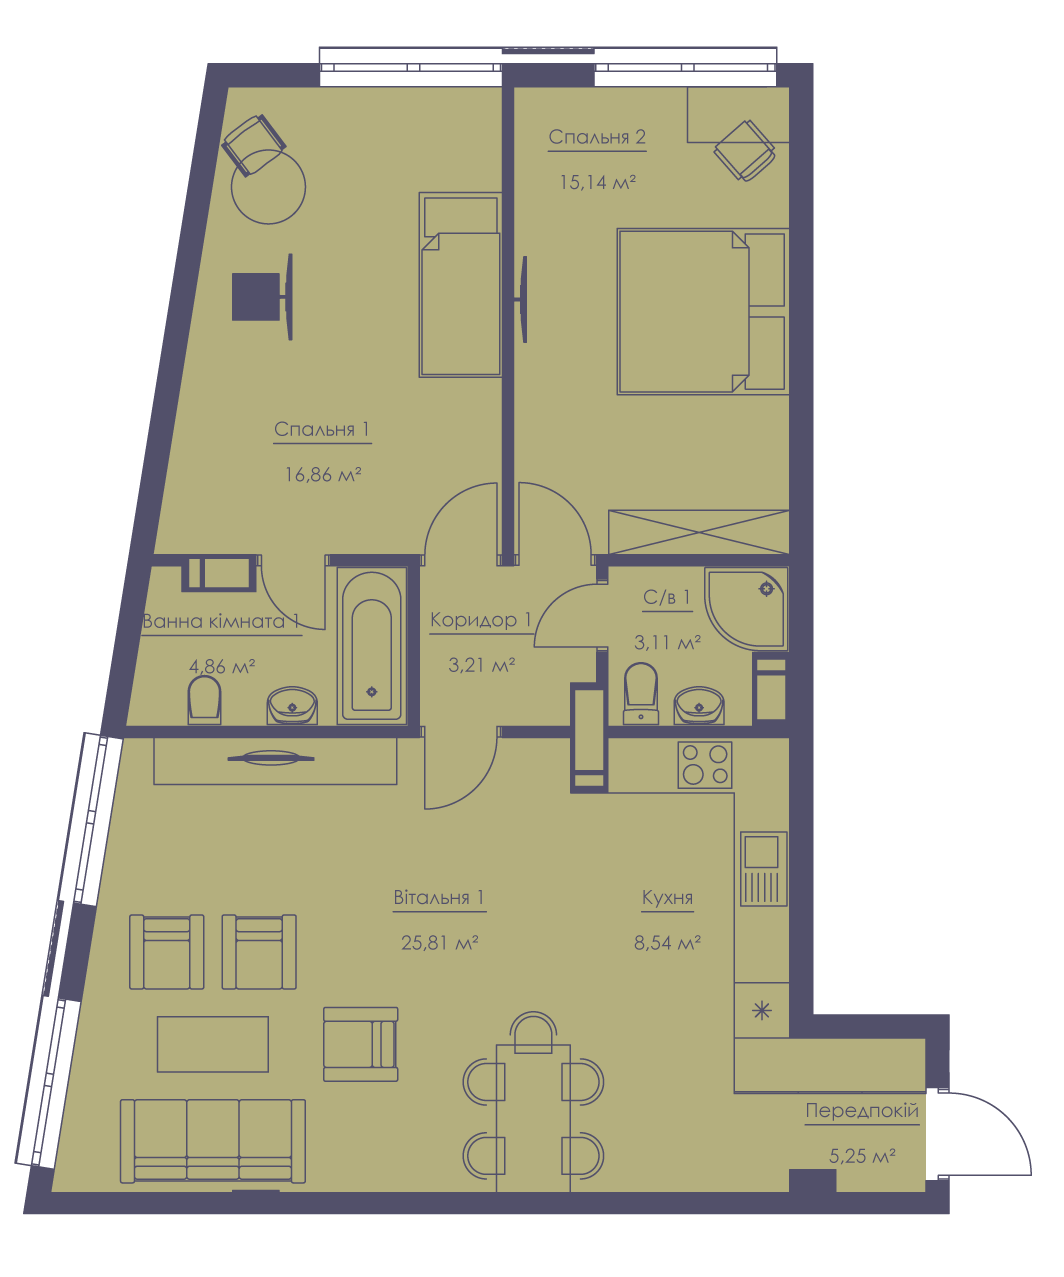 Apartment layout KV_118_3.3n_1_1_7-1